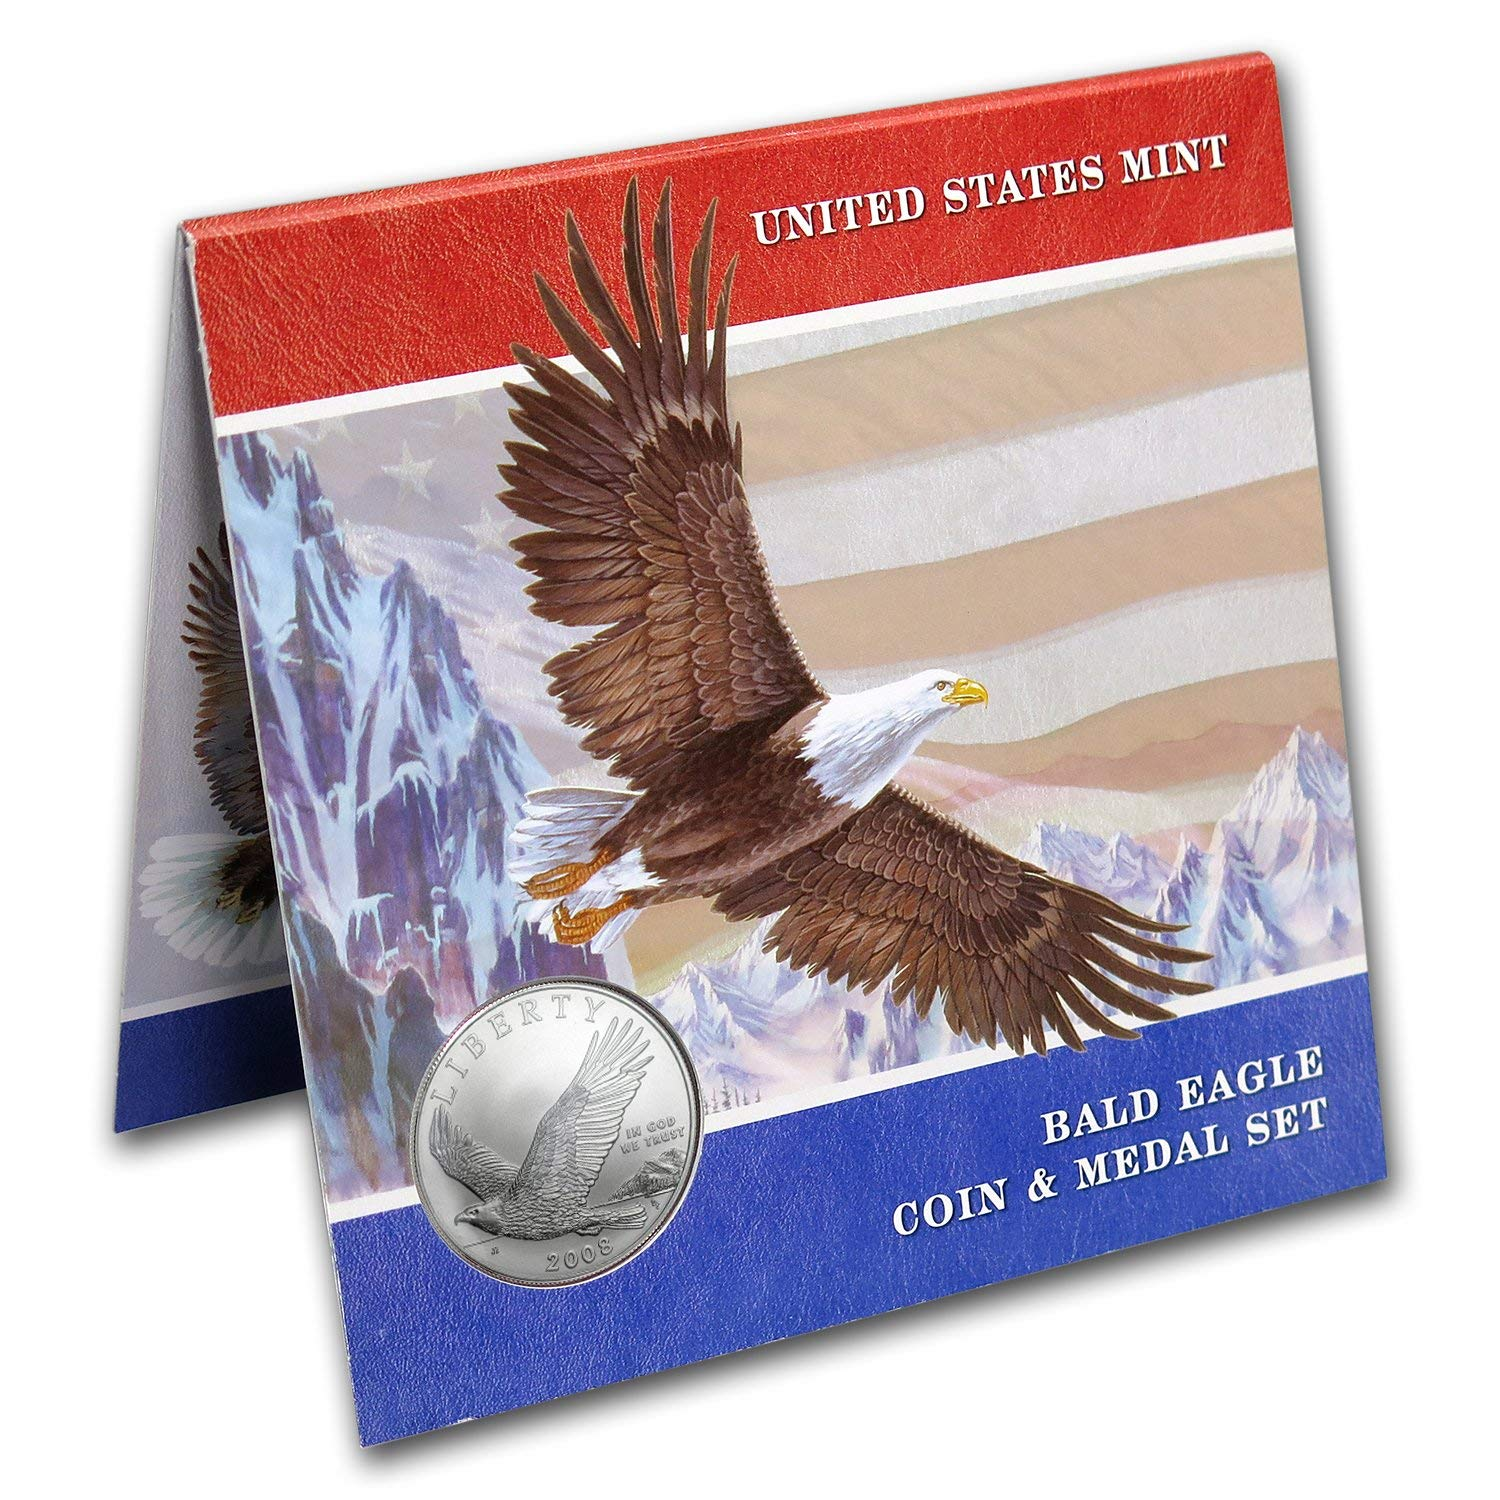 2008 Bald Eagle Coin and Medal Set Commemorative Silver Dollar Mint State